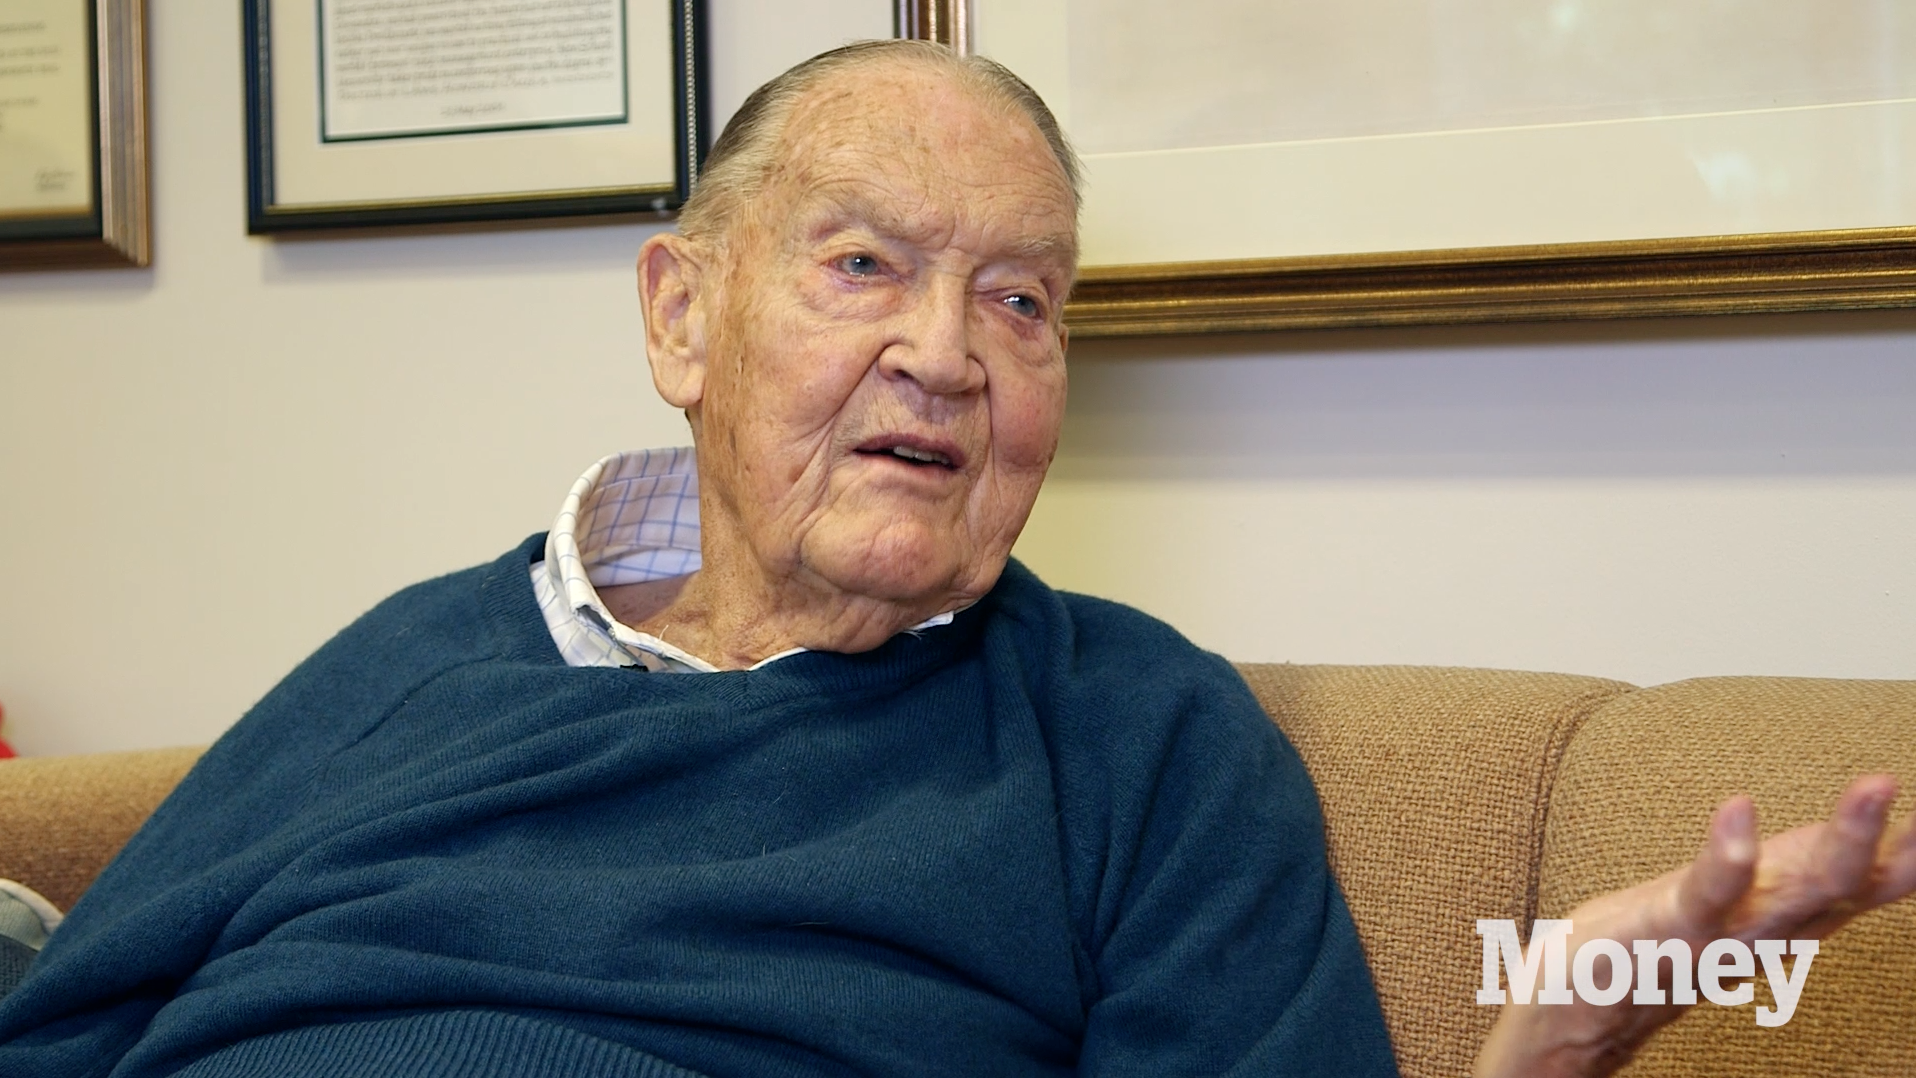 Jack Bogle's Father's Day advice